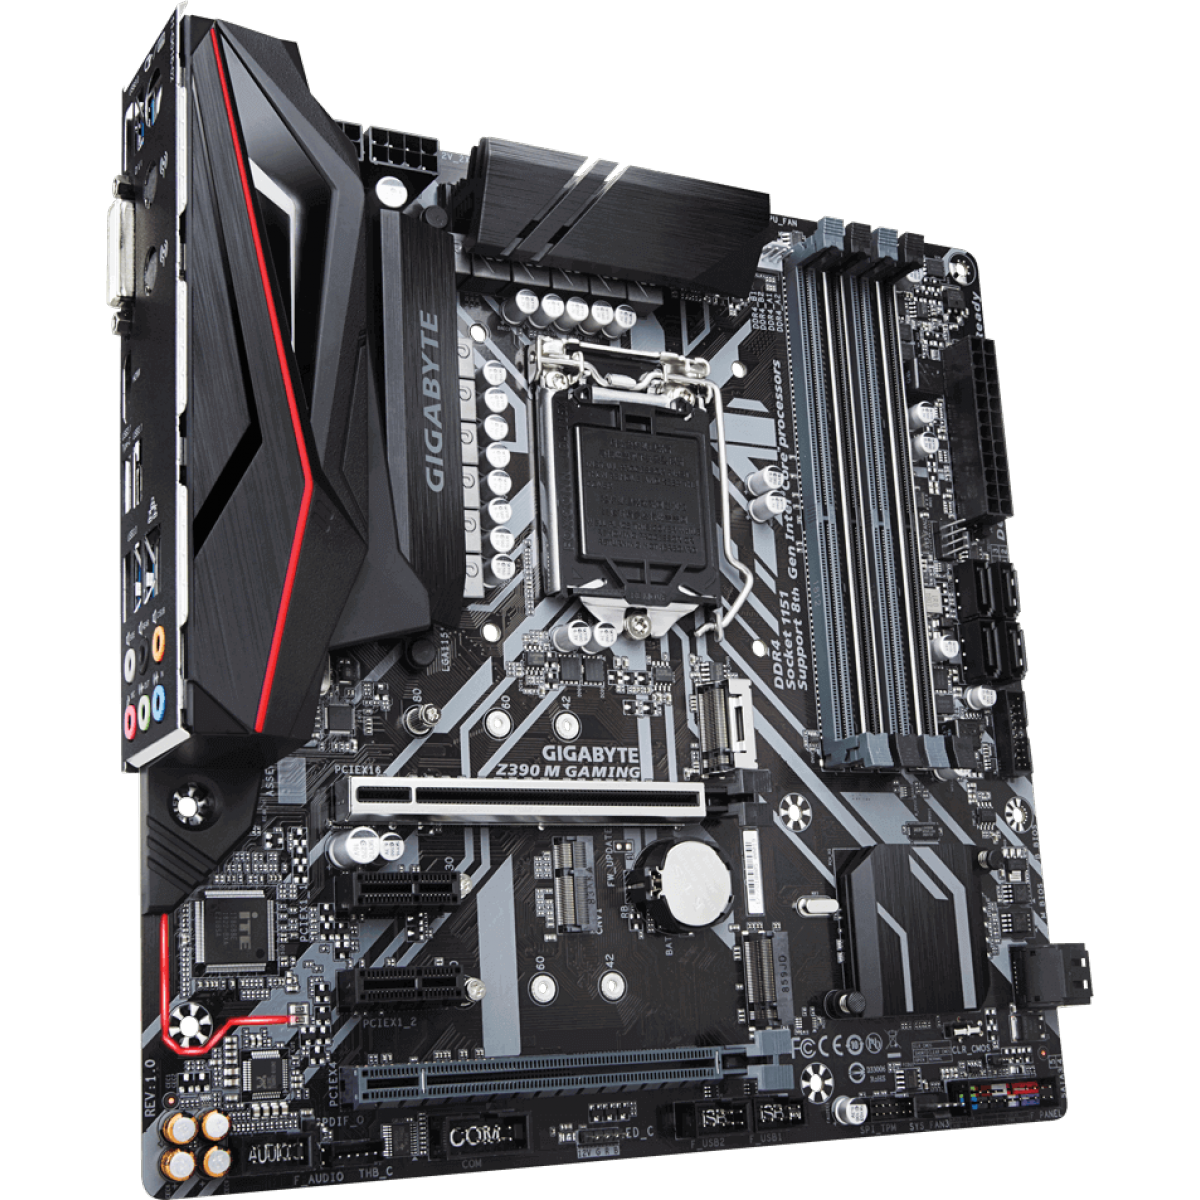 Placa Mãe Gigabyte Z390 M GAMING, Chipset Z390, Intel LGA 1151, mATX, DDR4 - Open box